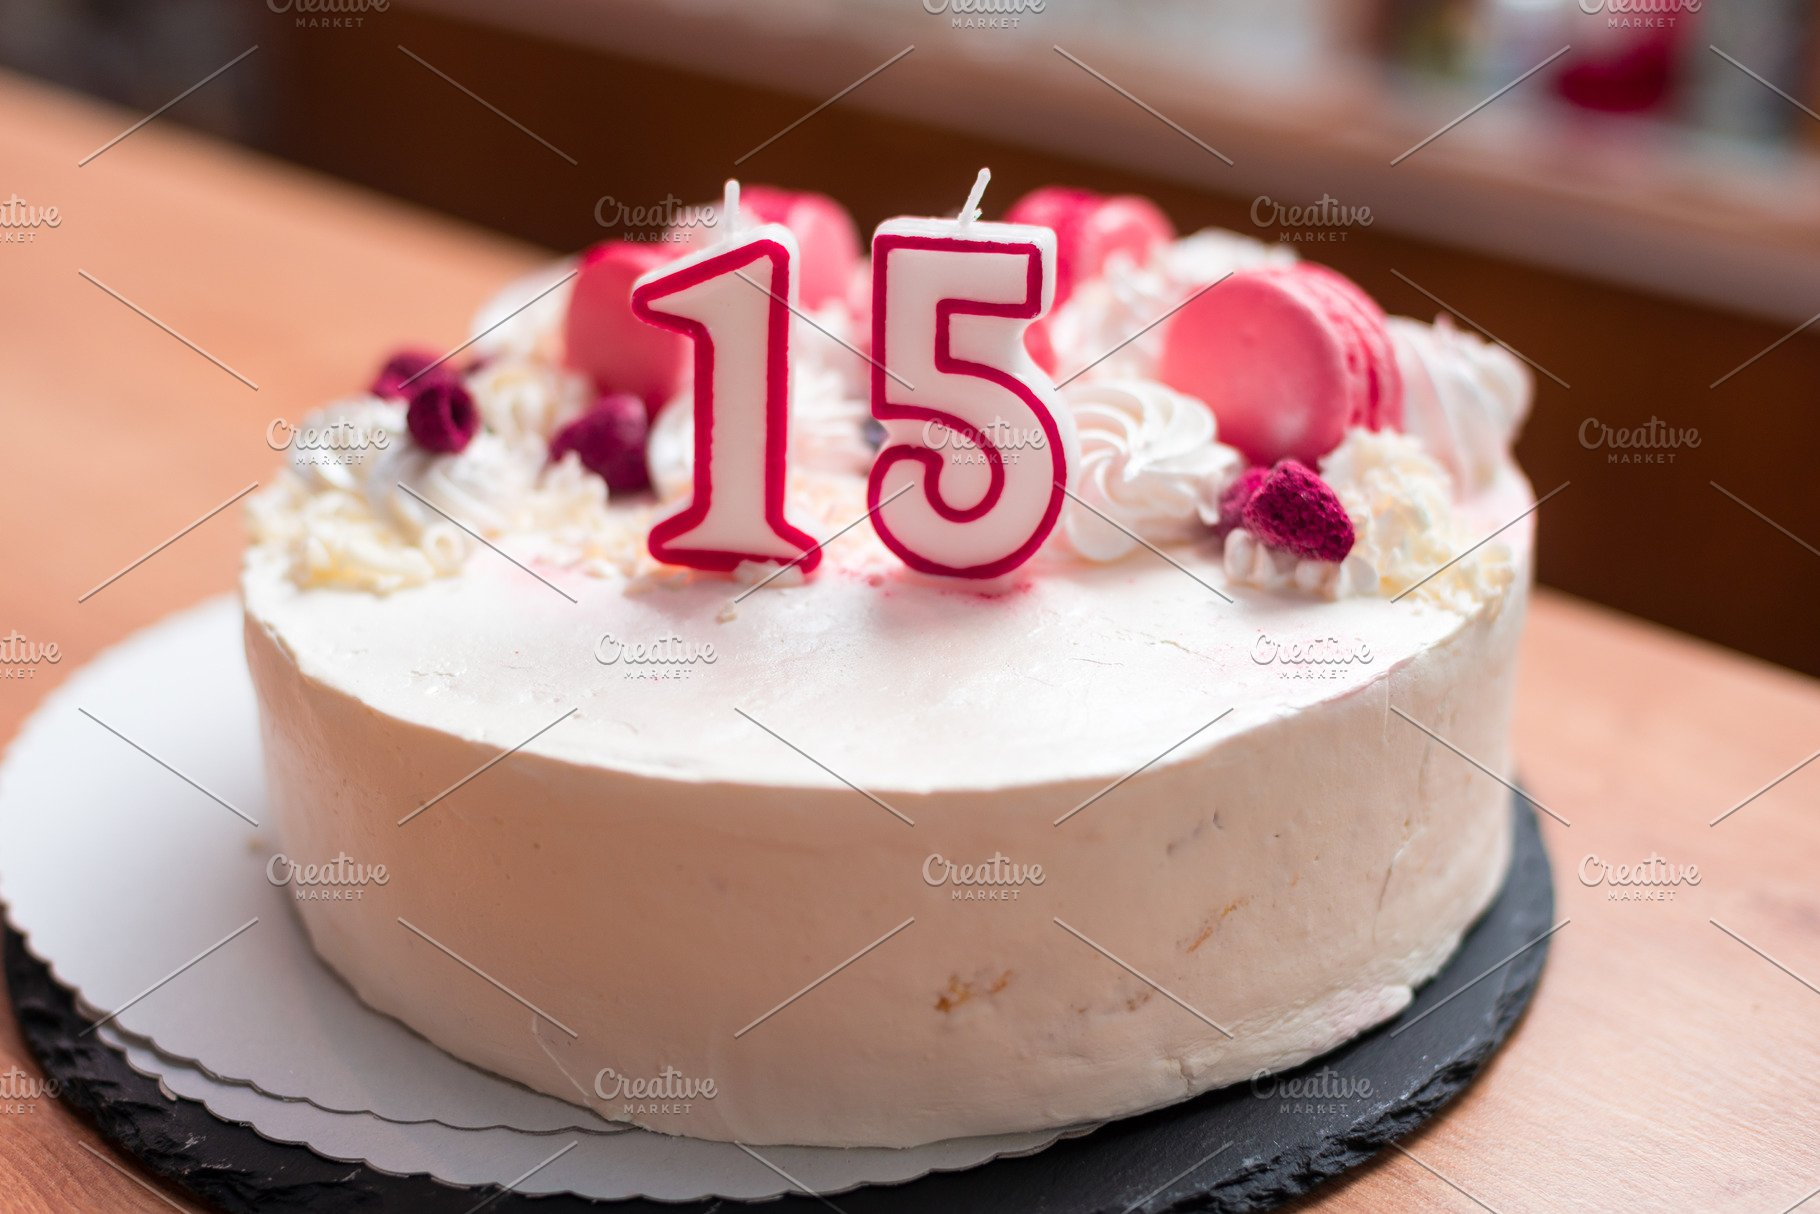 Save Birthday Cake For 15 Years Old Girl